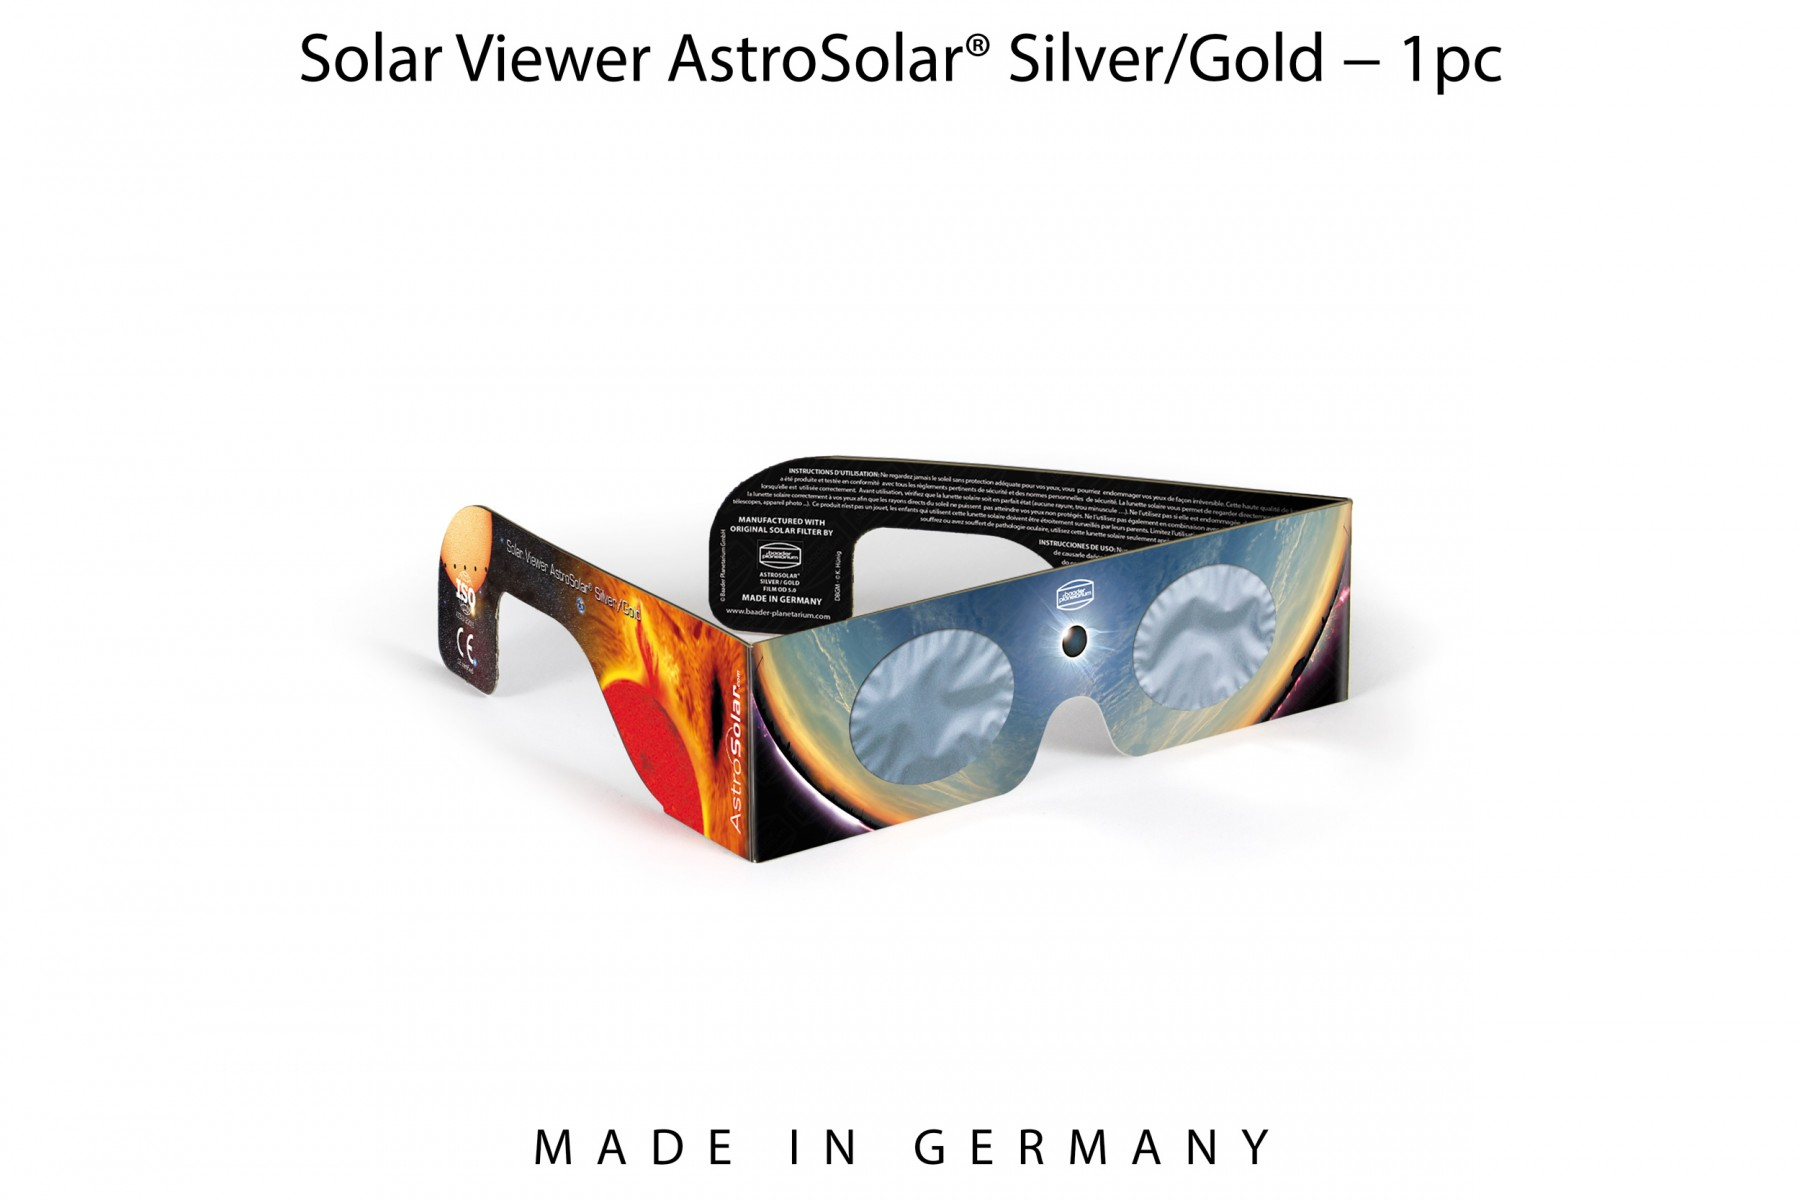 1 x Solar Viewer AstroSolar® Silver/Gold